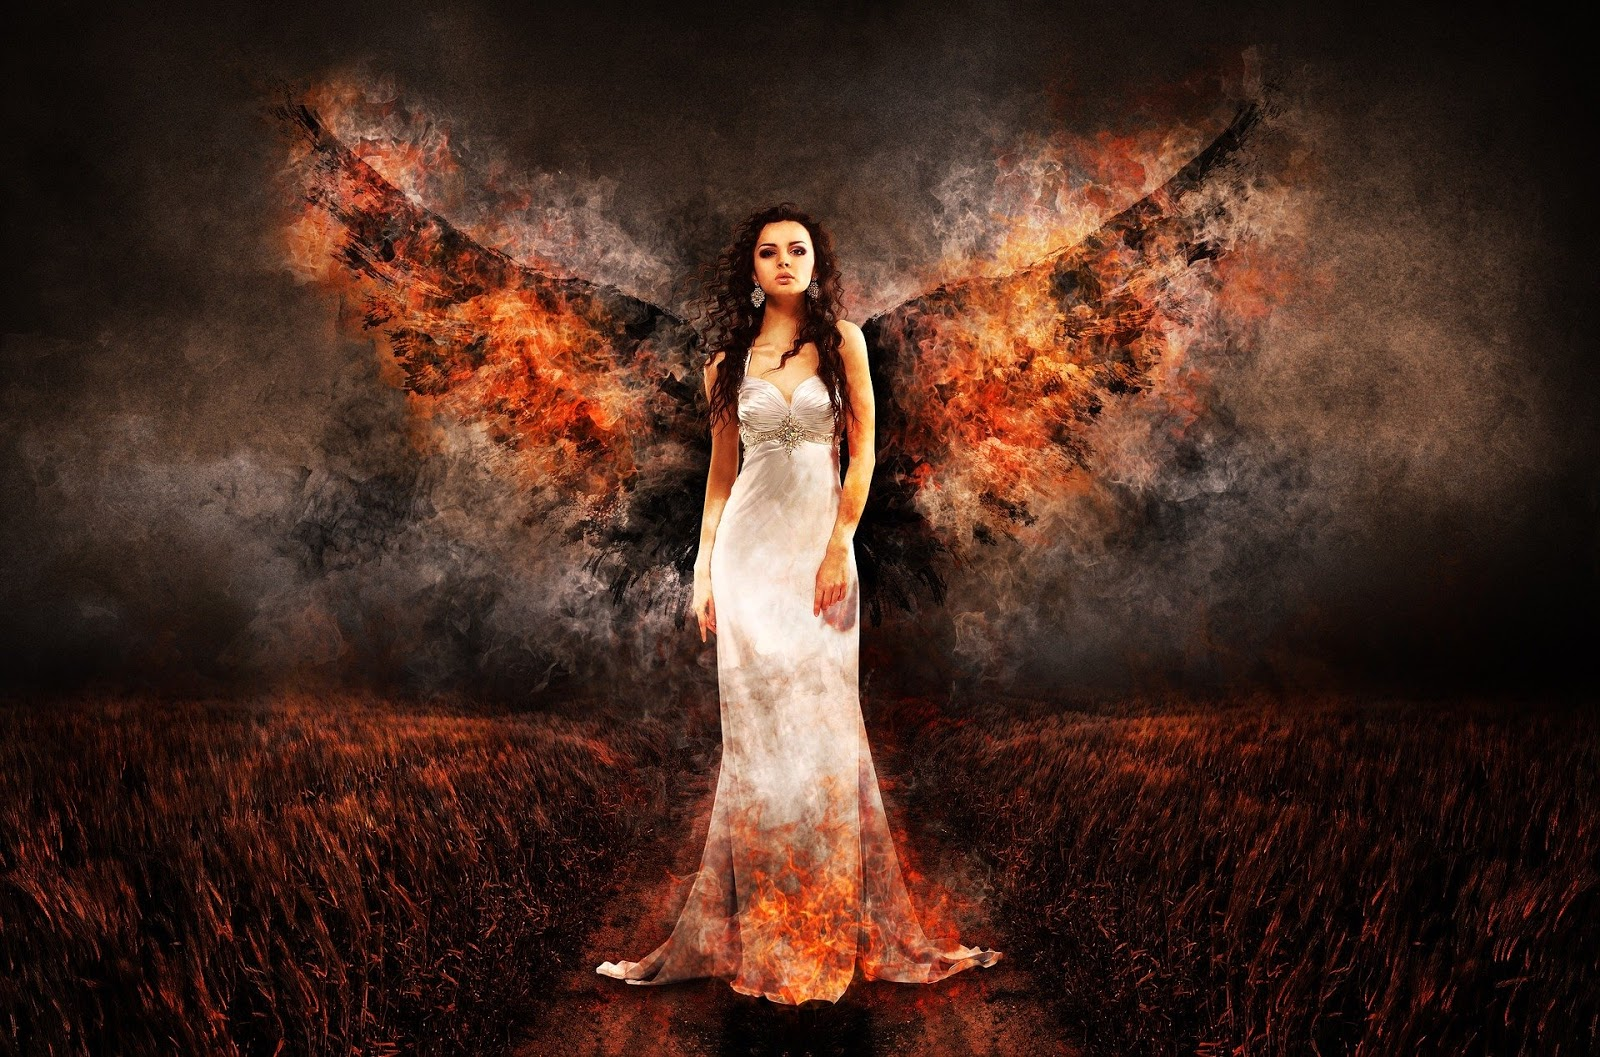 woman in long white dress stands in a burning field with angel wings coming out of her shoulders to illustrate a blog post about war movie standoffs